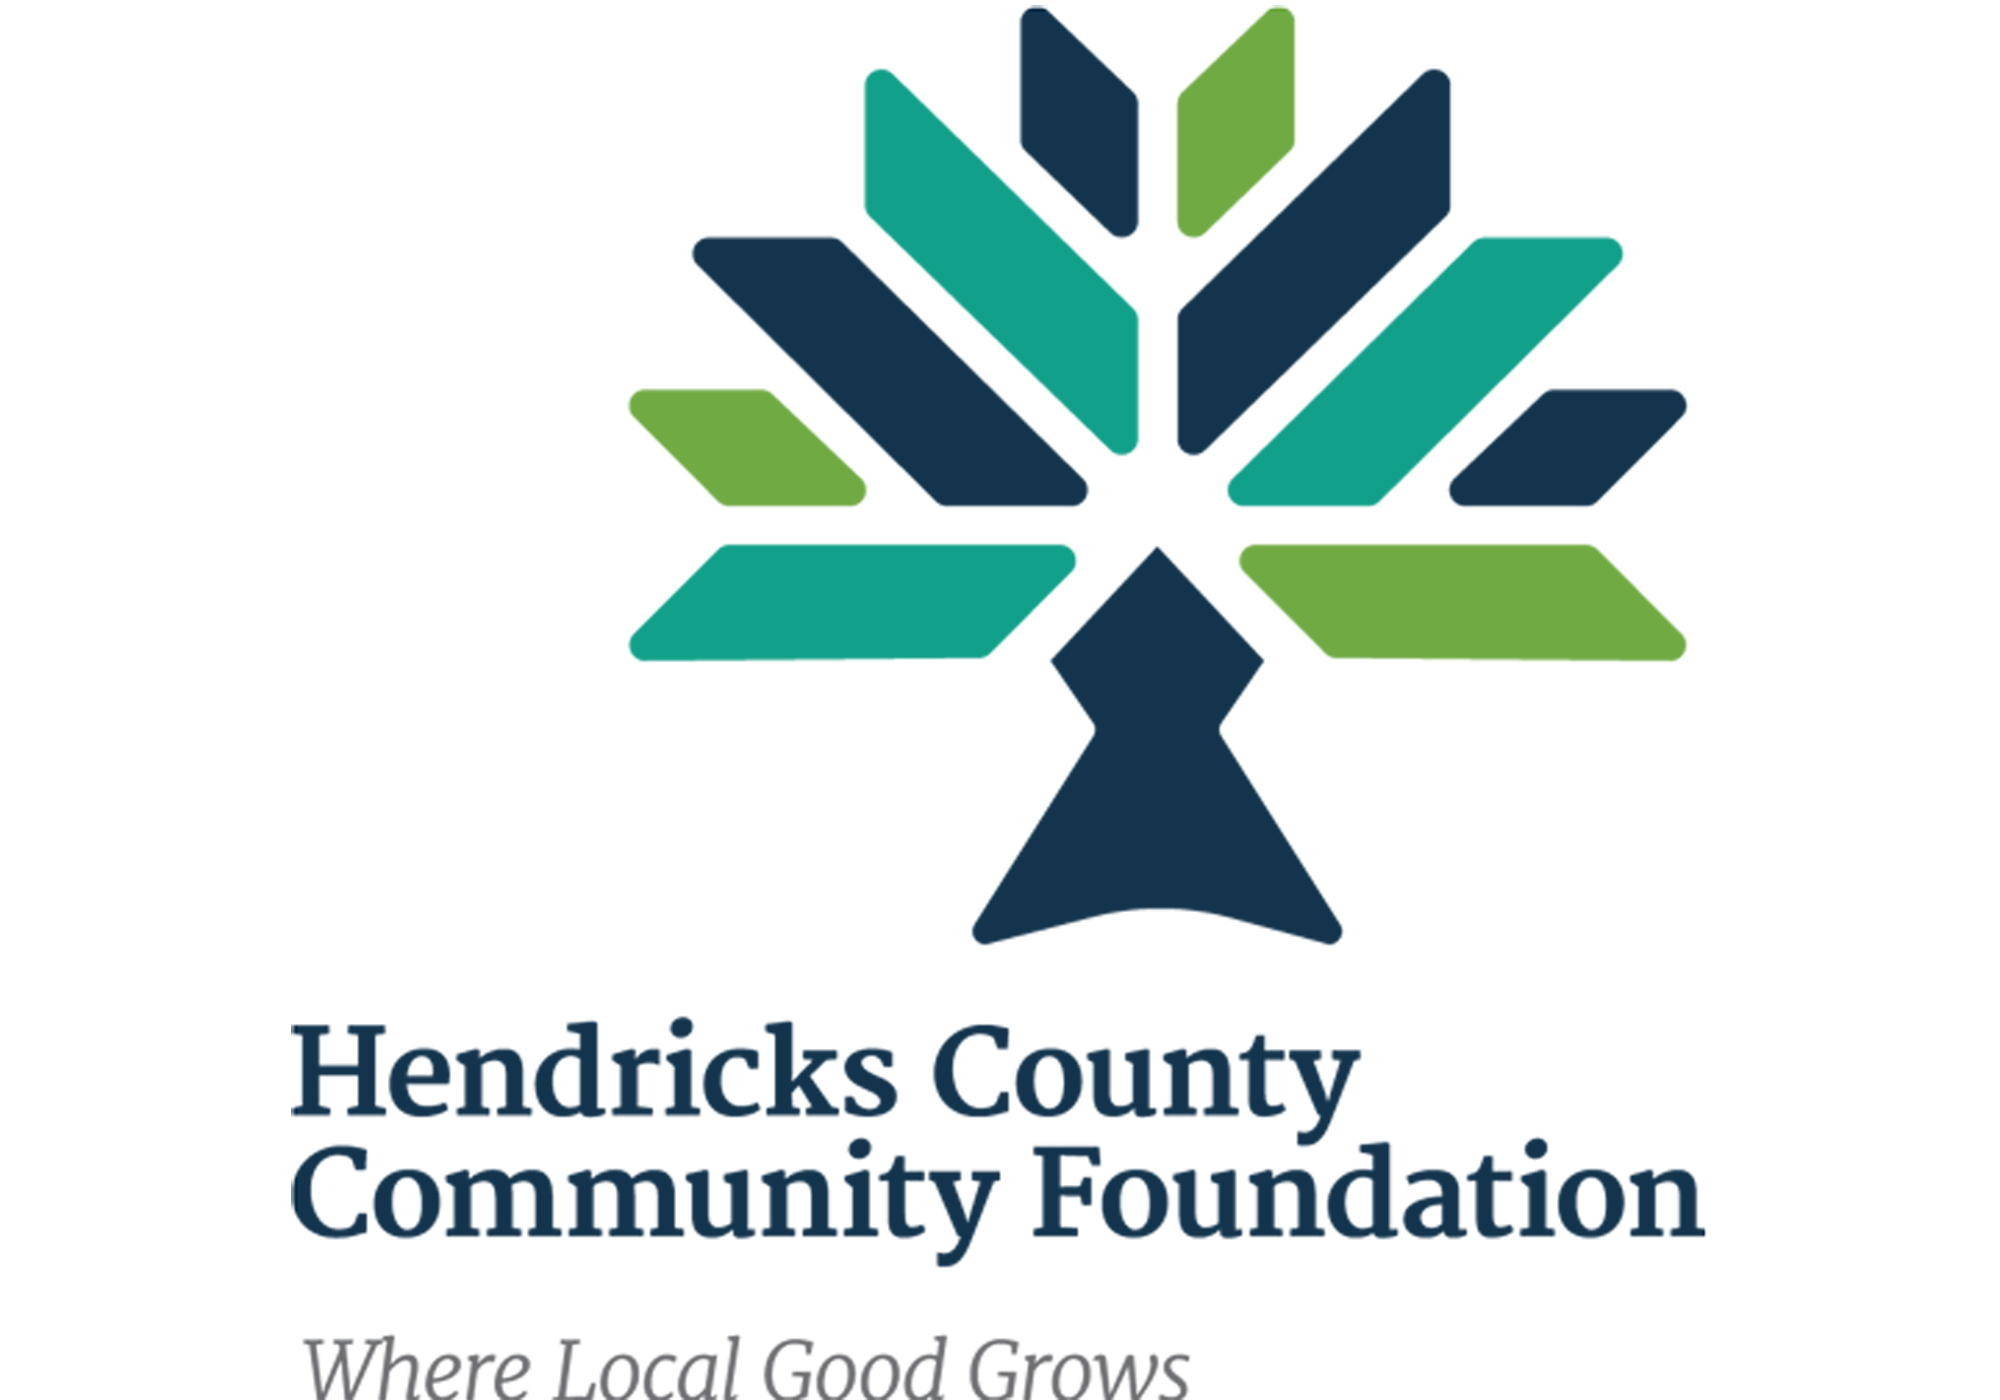 HCCF & Community Partners Respond to COVID-19